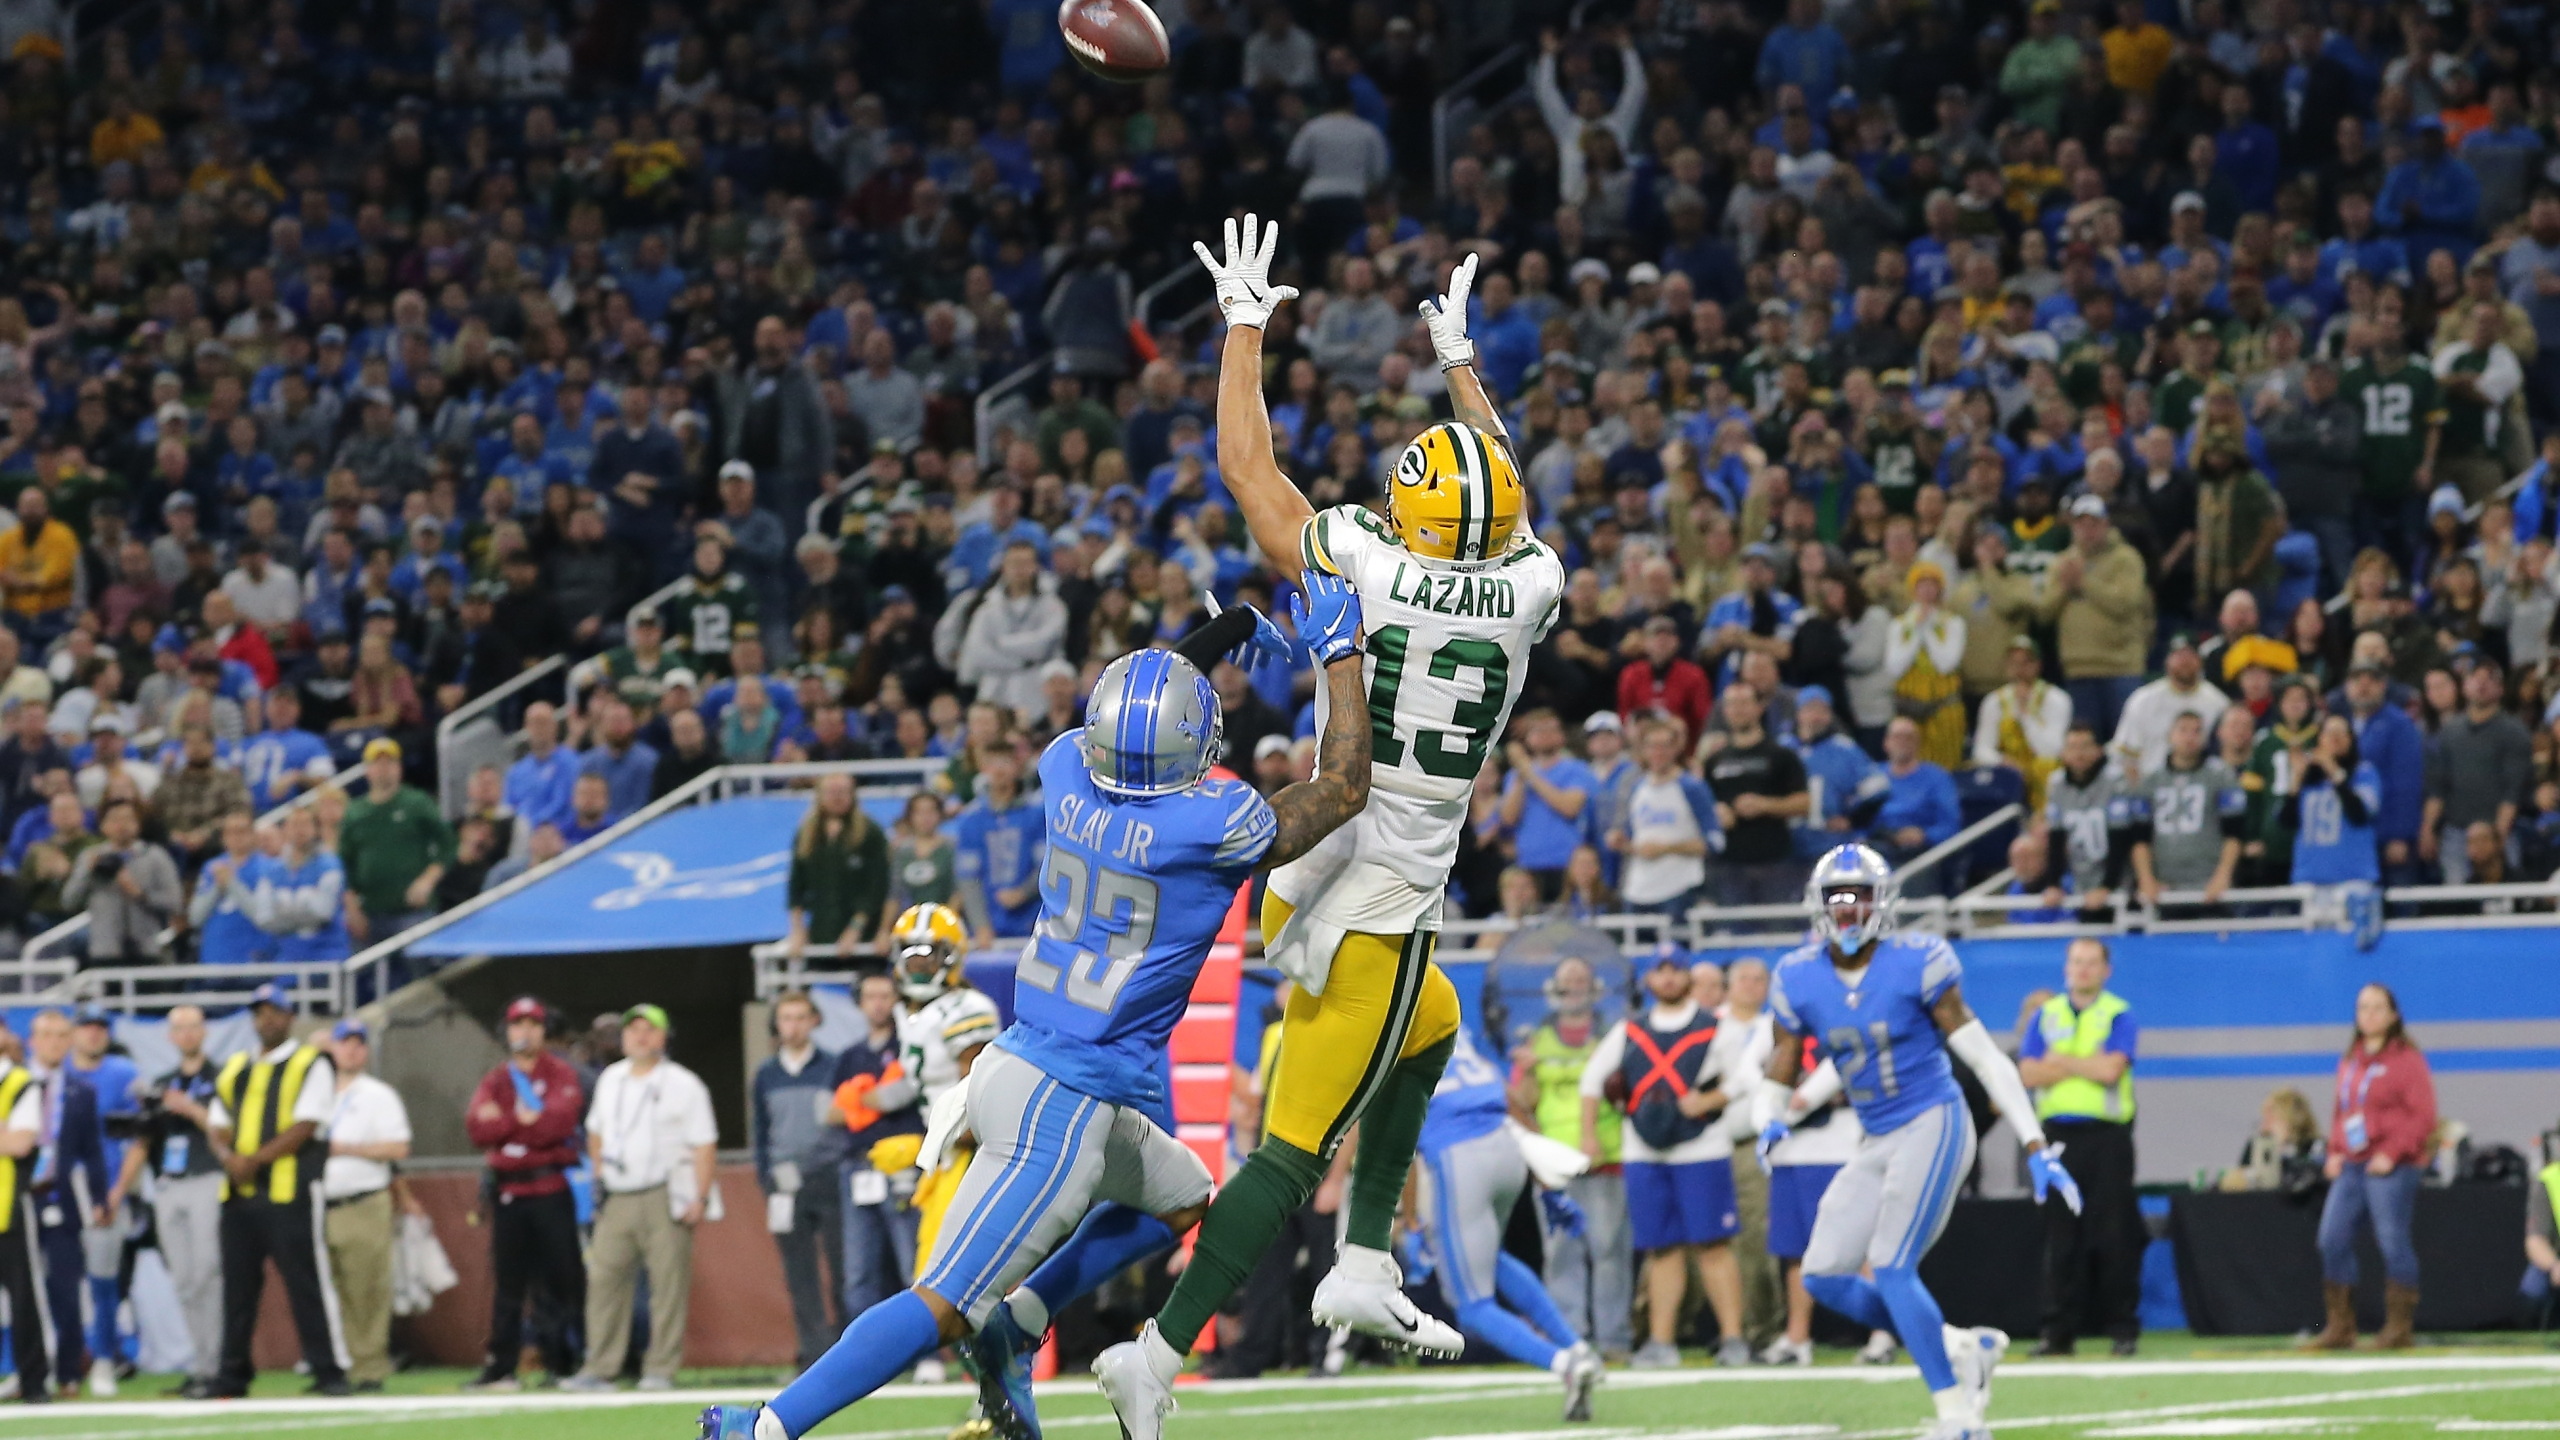 Packers Activate Wide Receiver Allen Lazard Off Injured Reserve Wfrv Local 5 Green Bay Appleton